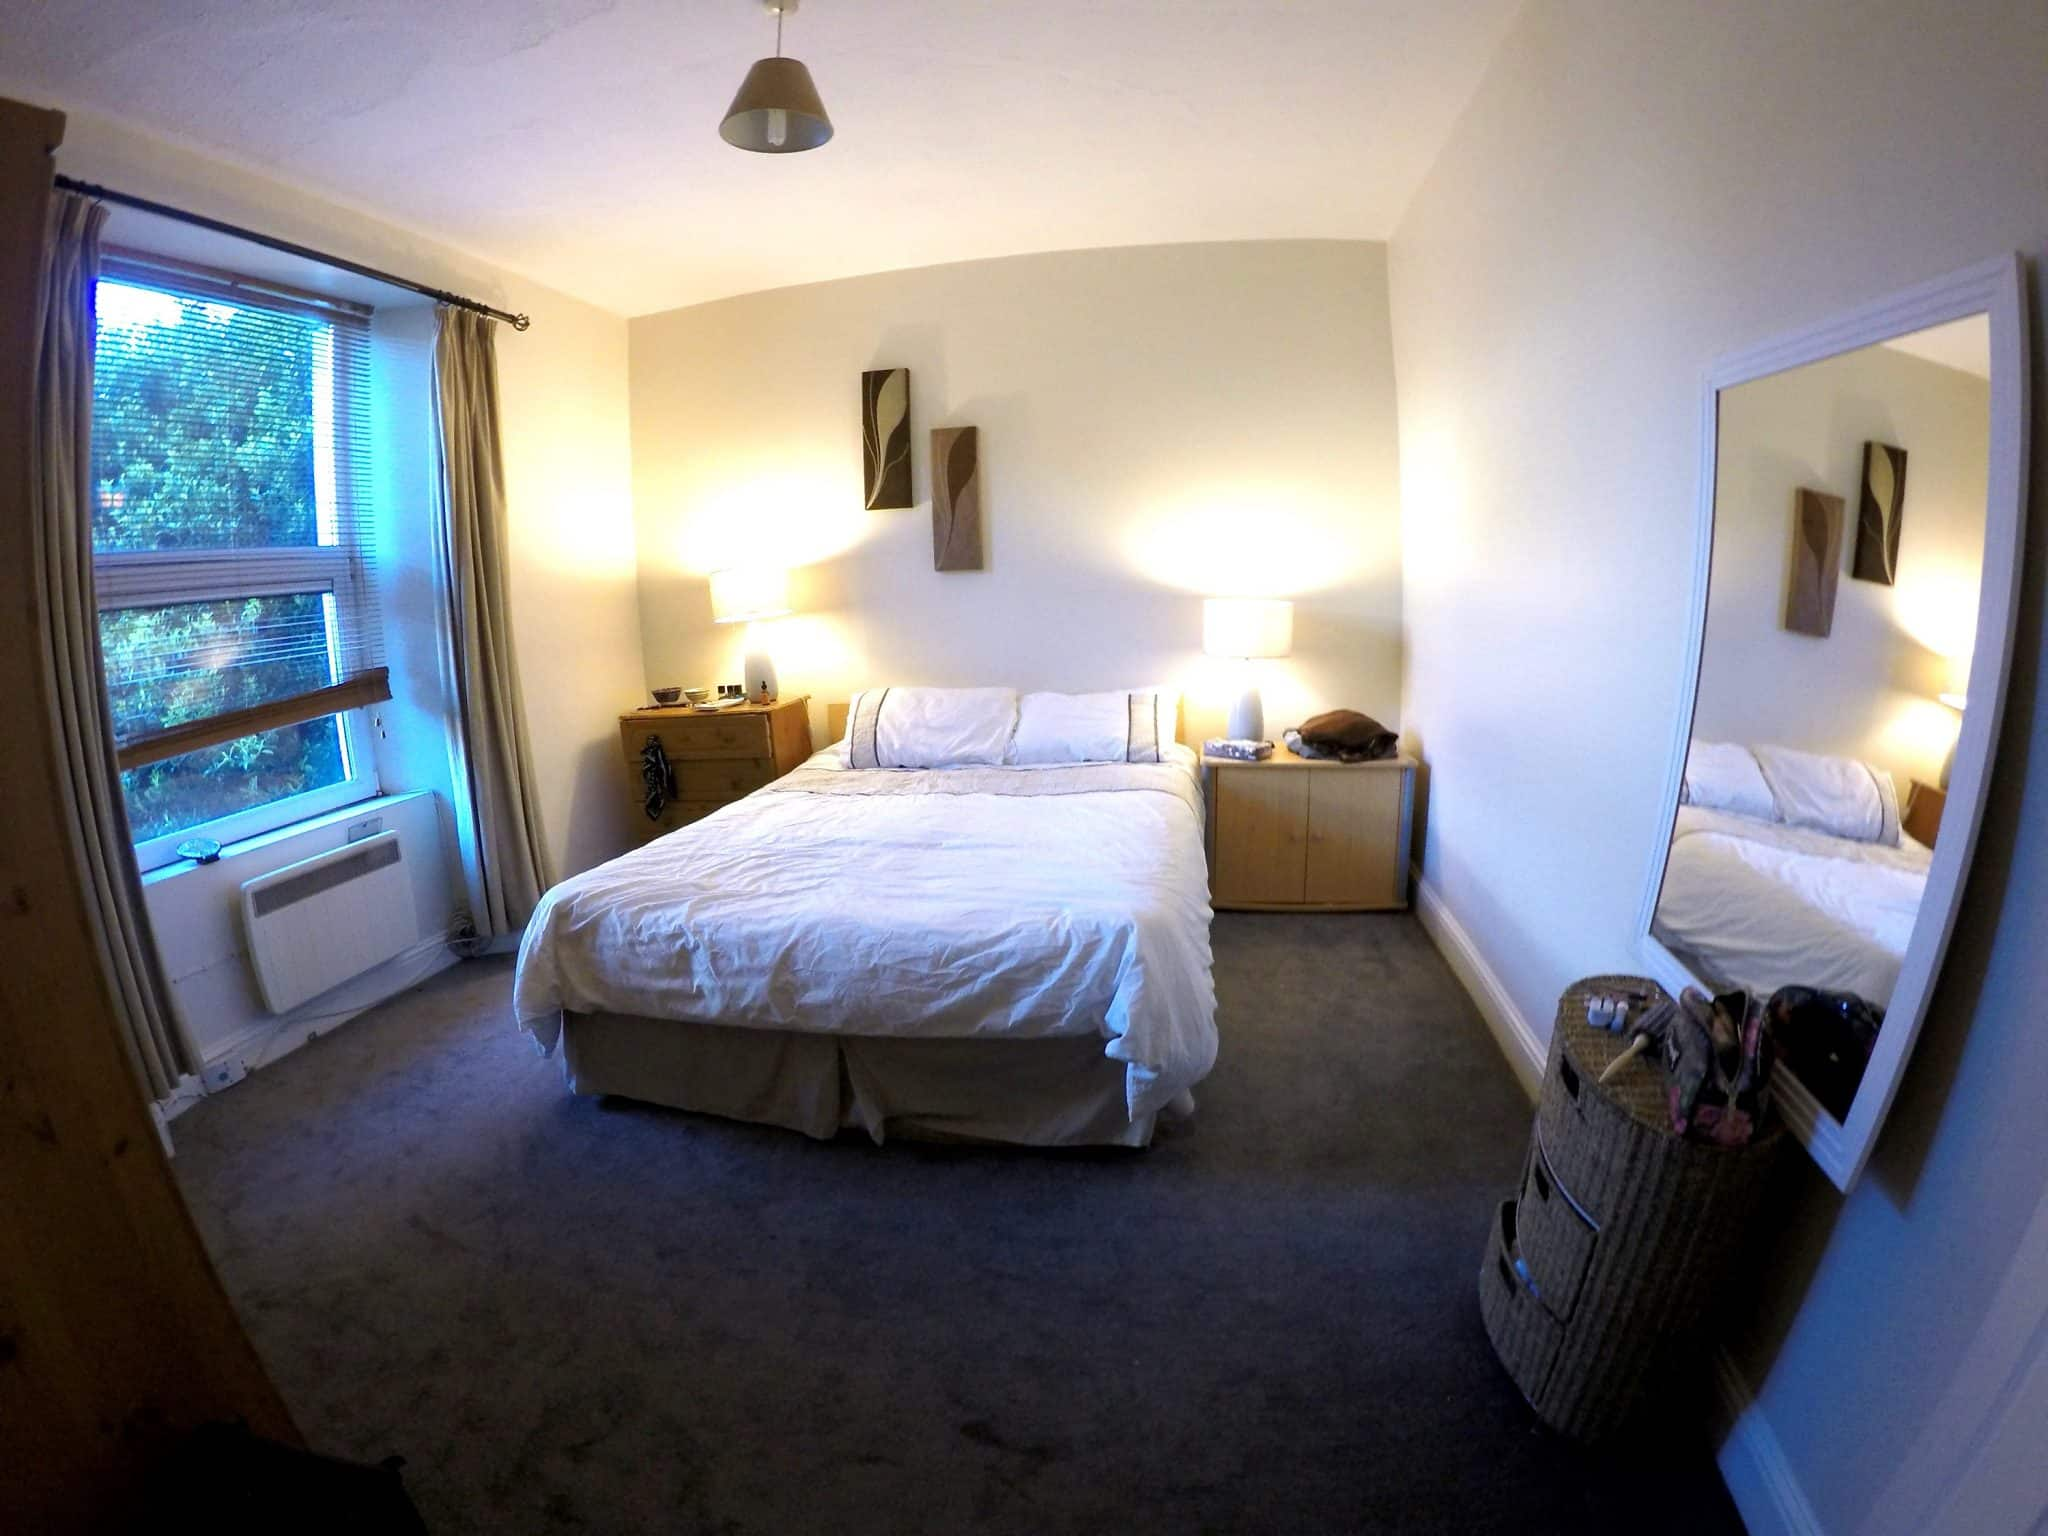 One bedroom apartment in Cork City, Ireland for short term rental. This was perfect for us on an Irish Working Holiday Visa.